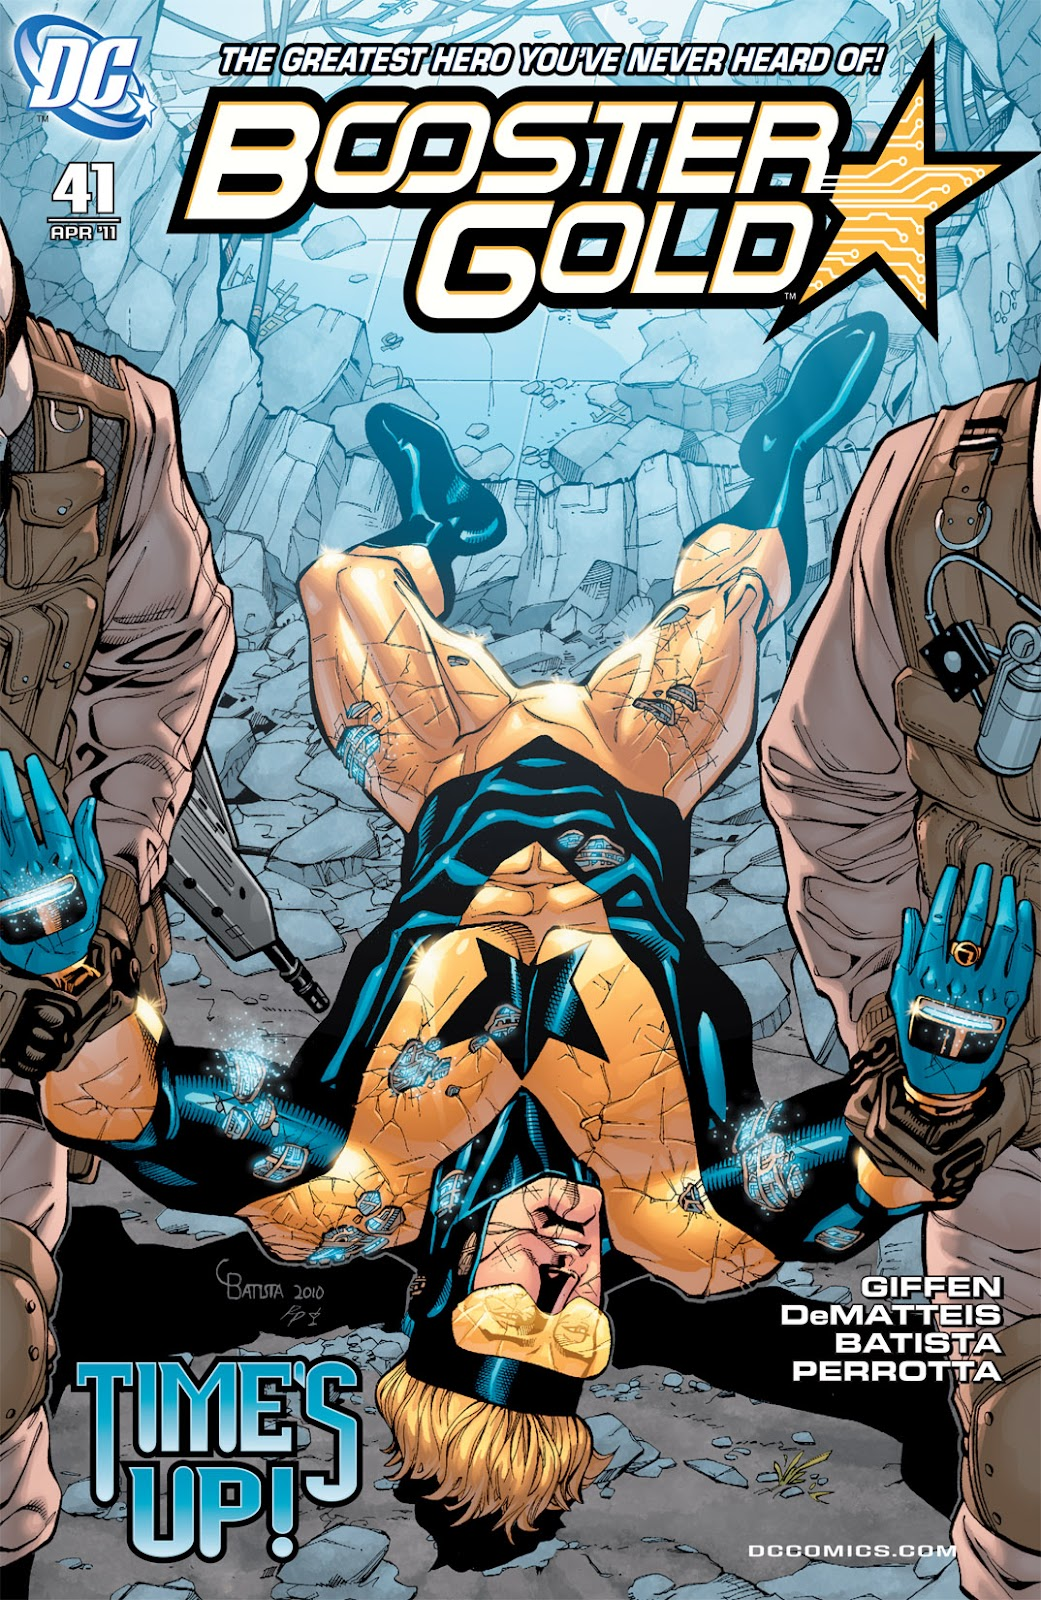 Booster Gold (2007) issue 41 - Page 1